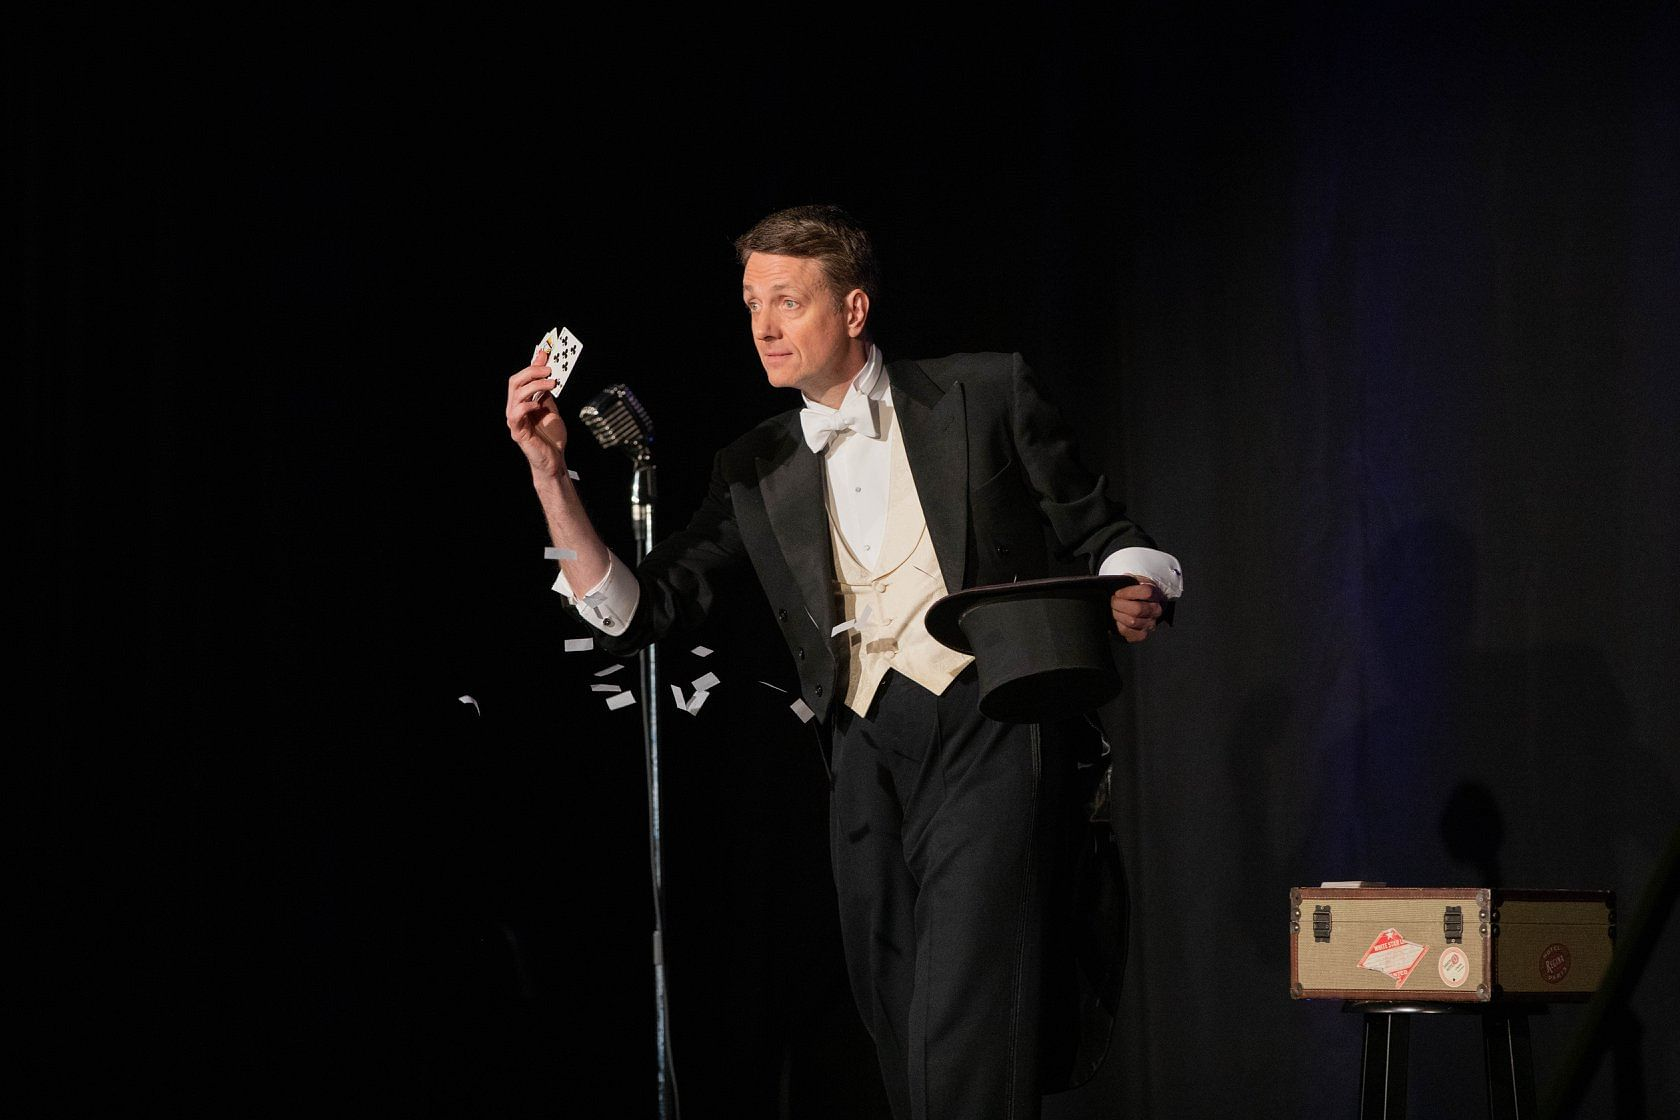 Magician in tuxedo performs a card trick at the Magifest Magic Convention